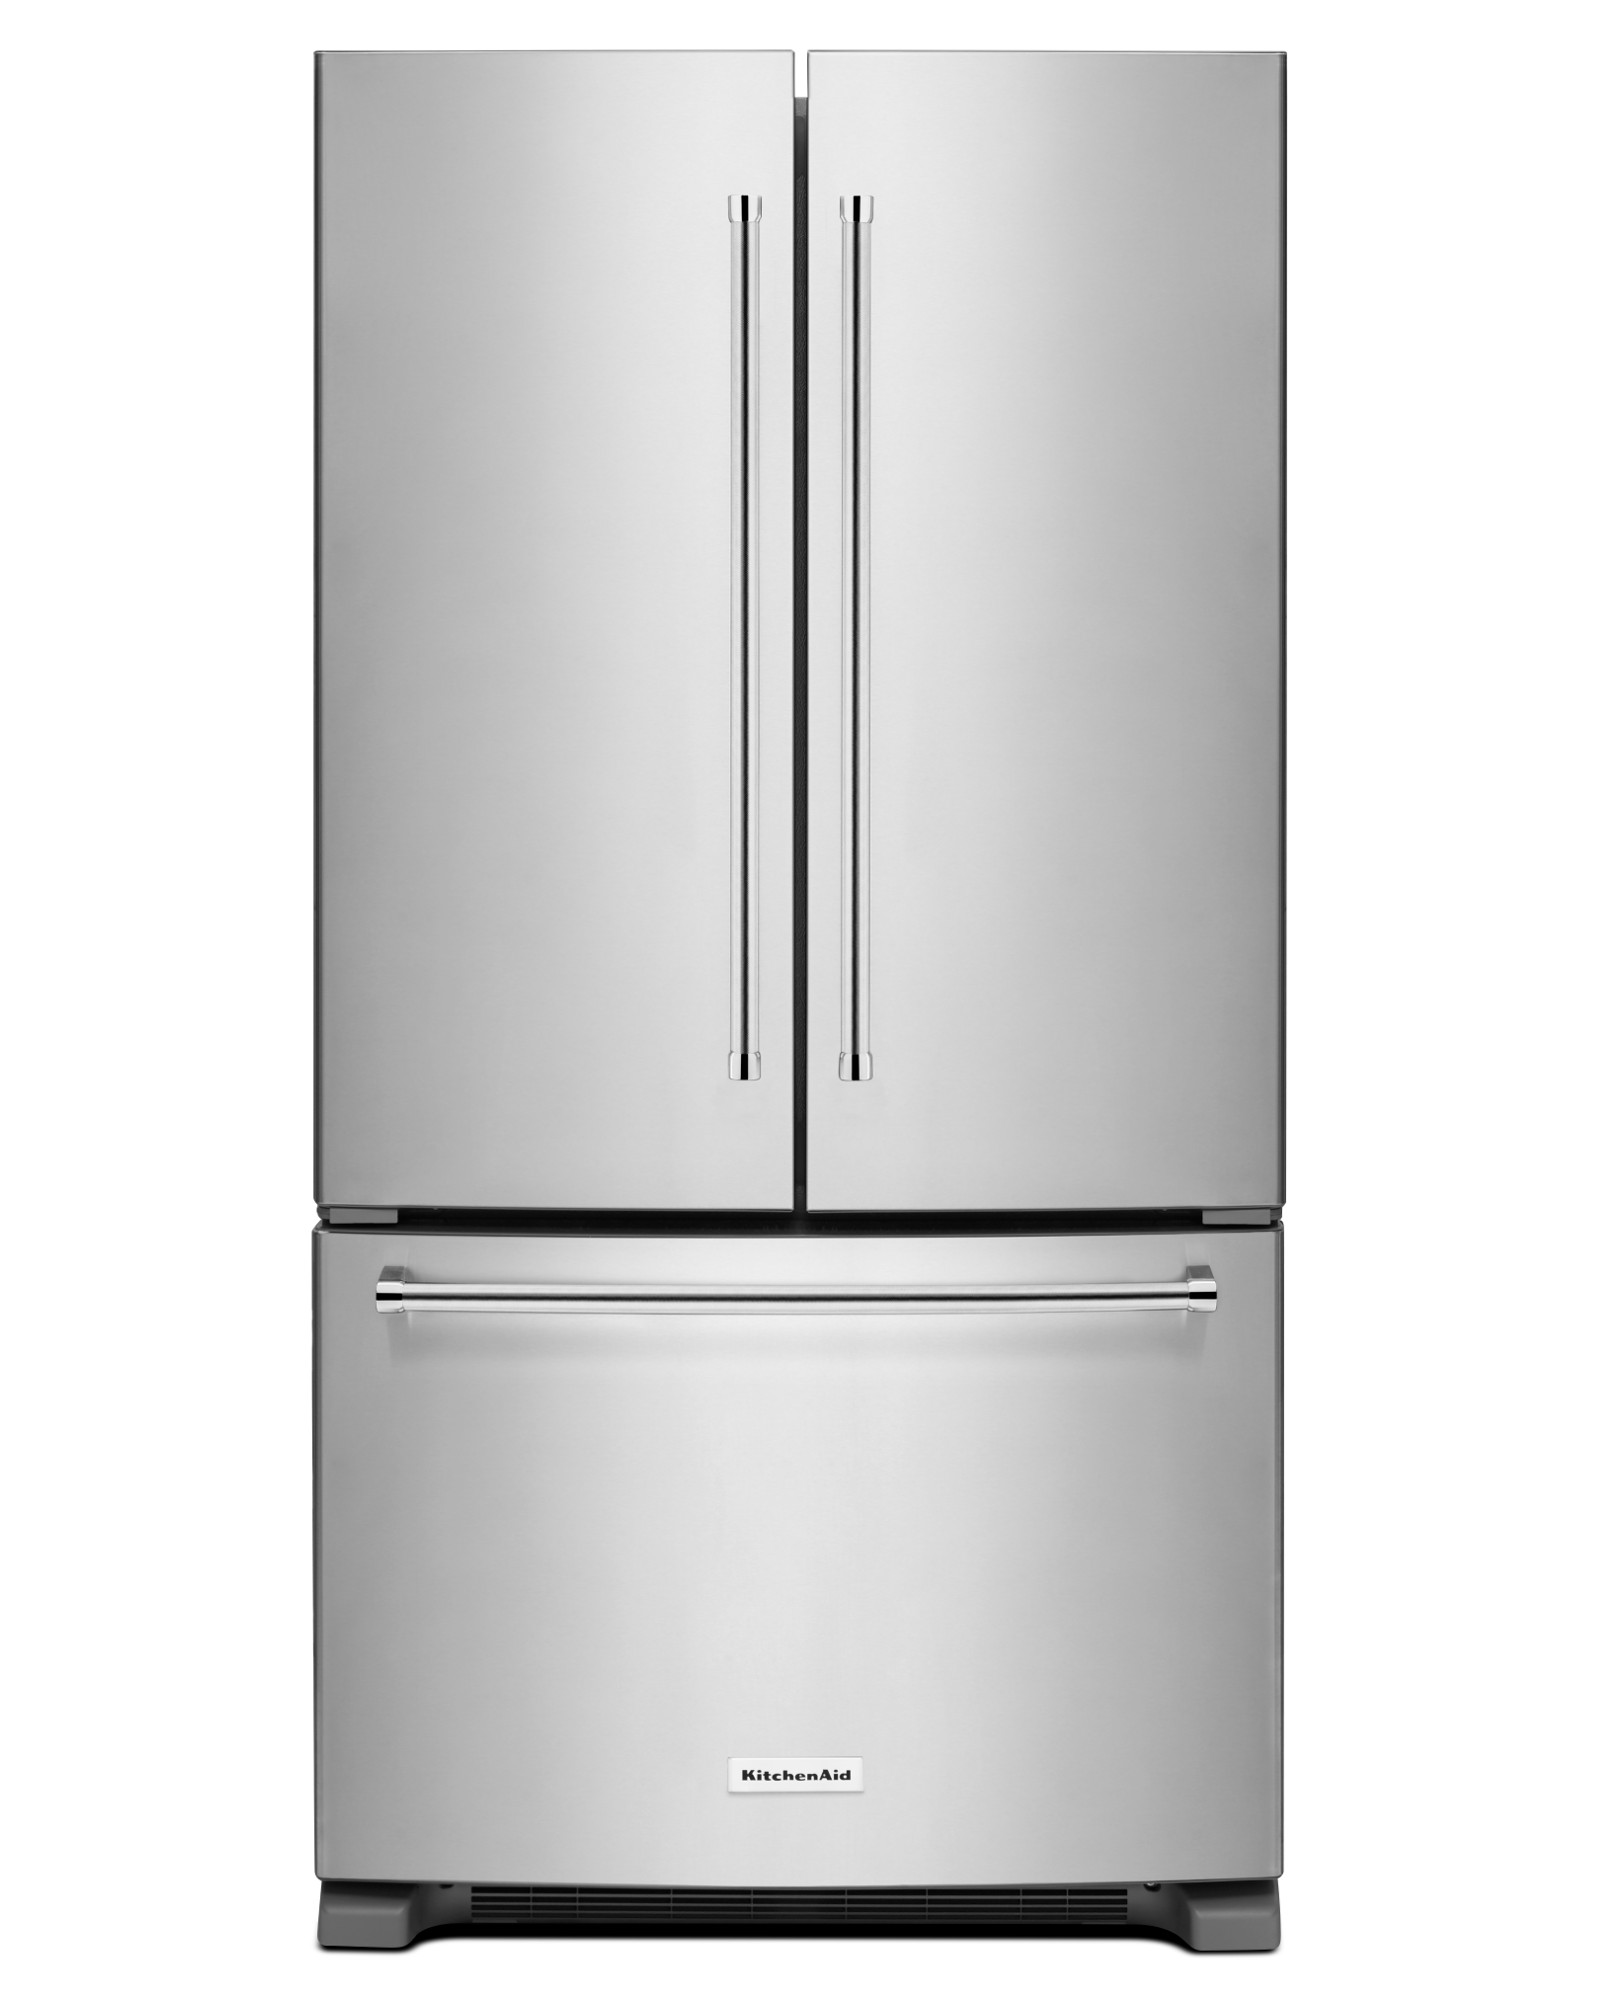 KitchenAid KRFC300ESS 20 cu. ft. French Door Refrigerator - Stainless Steel